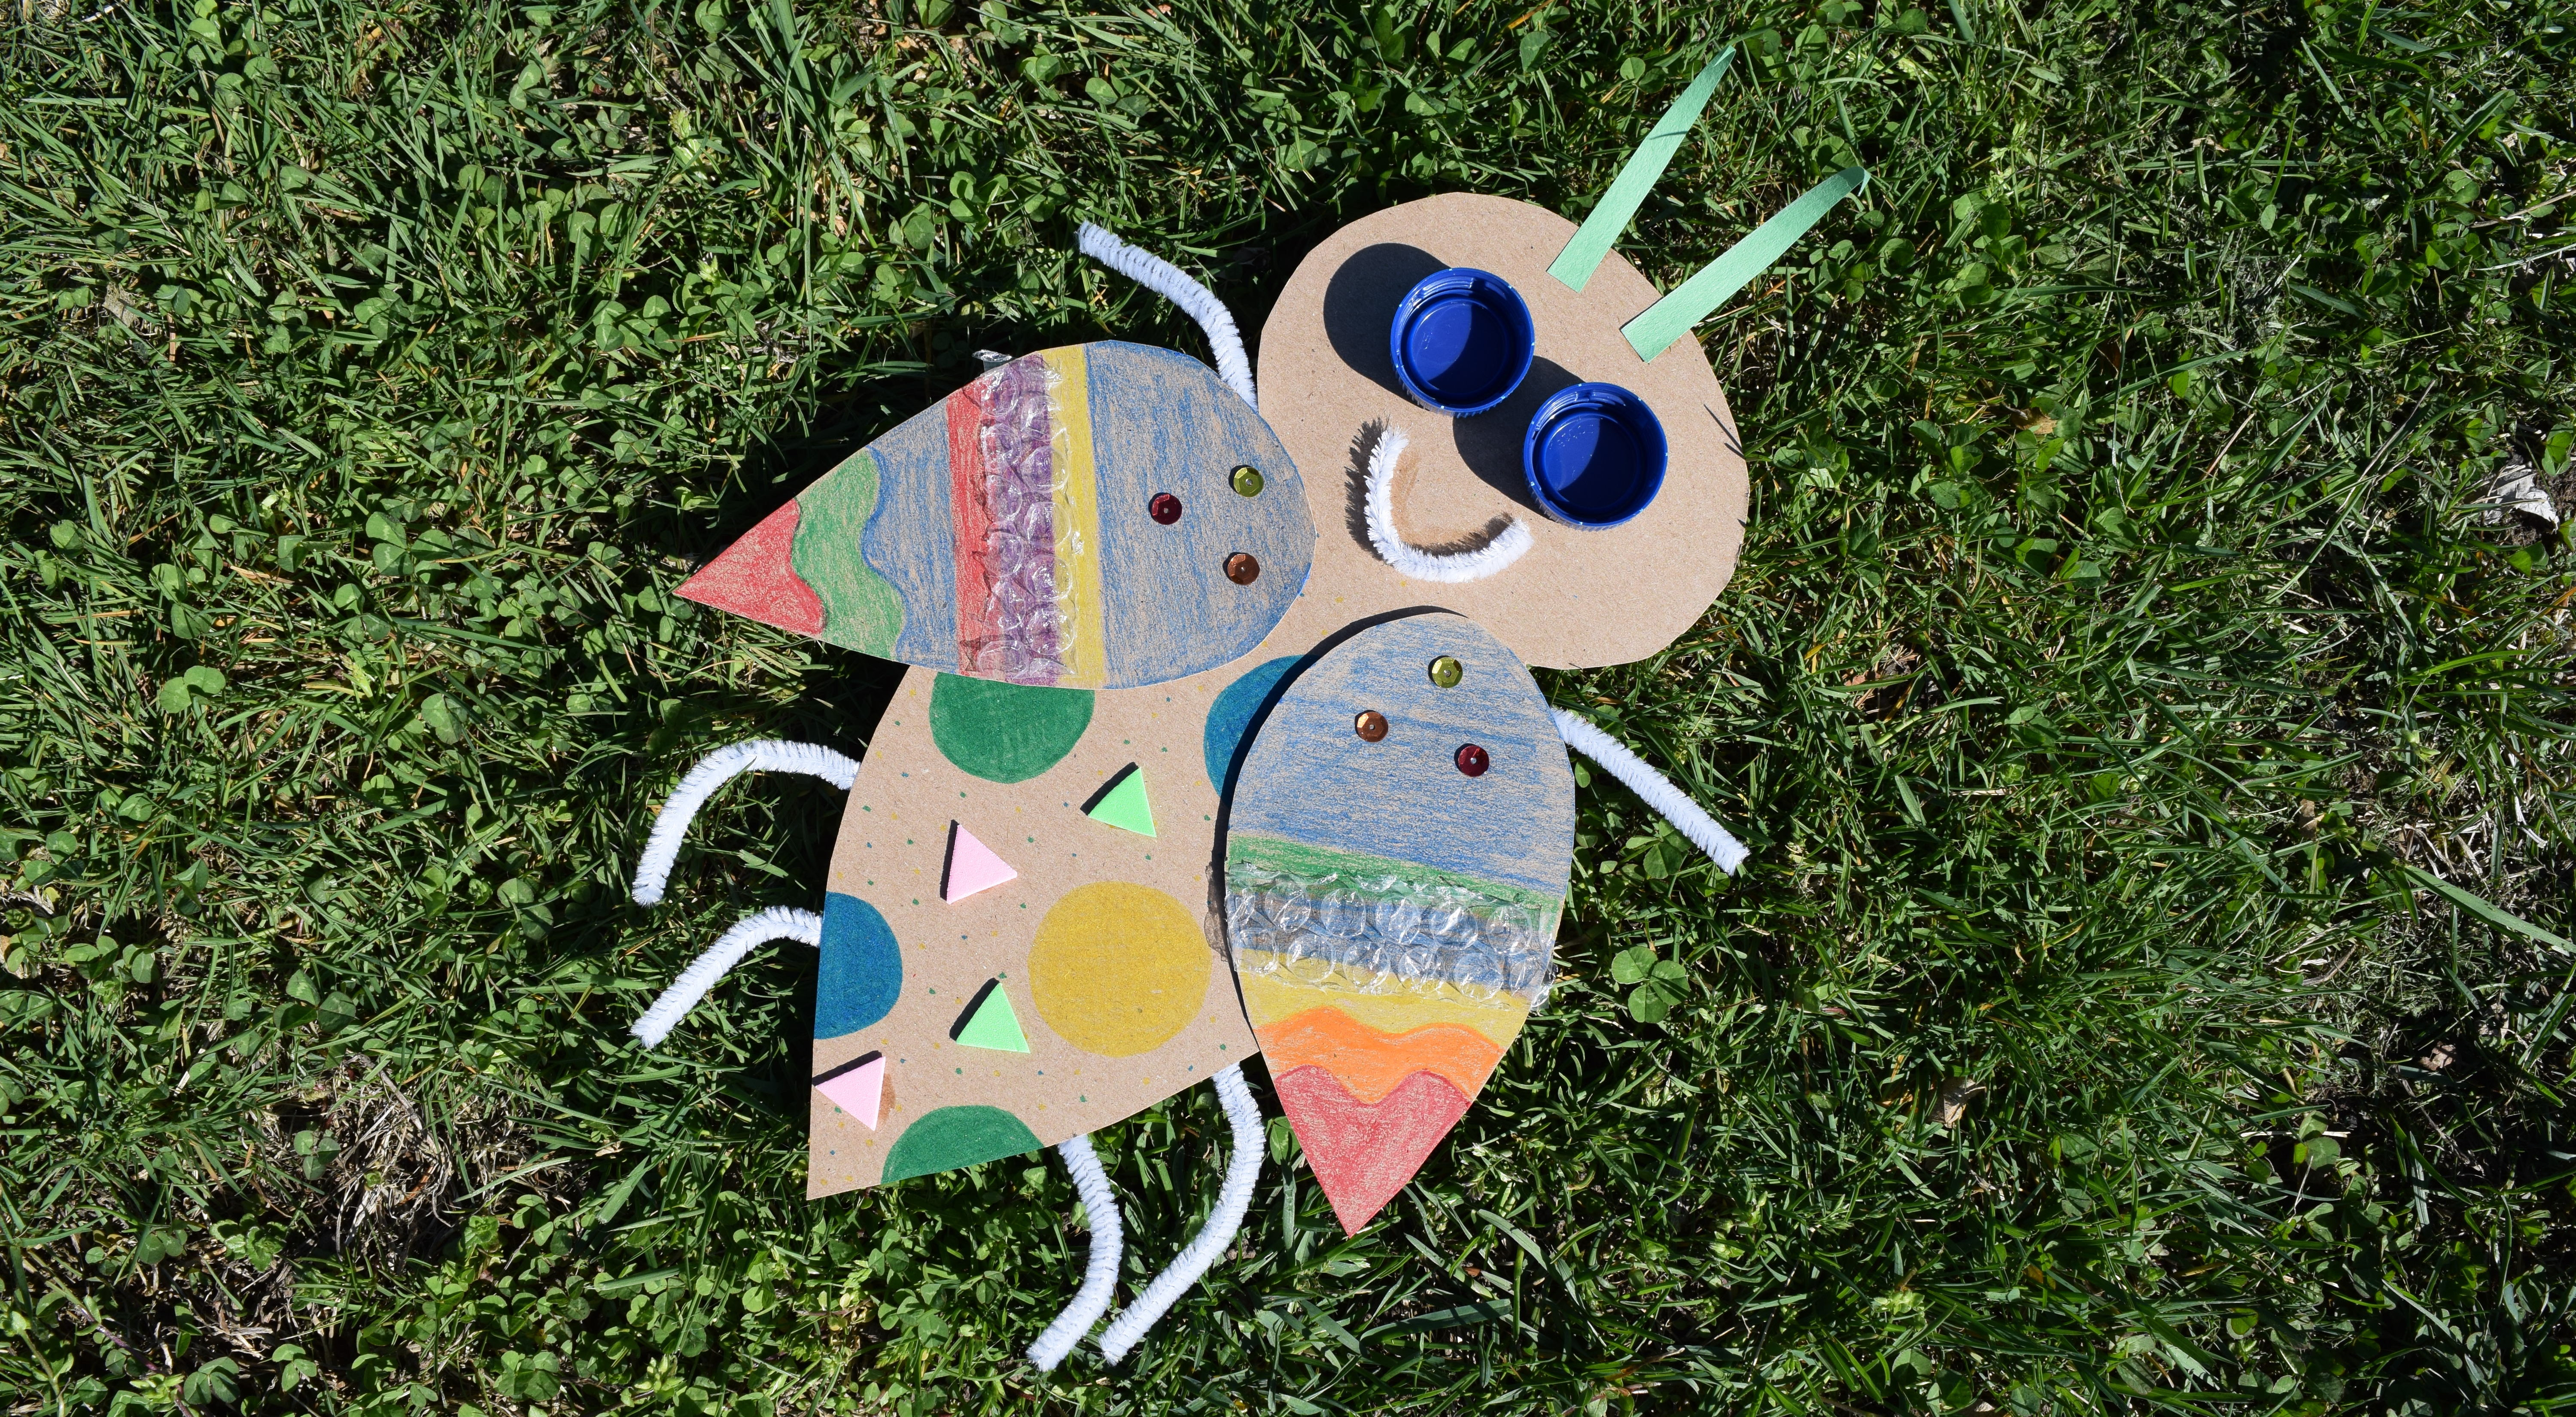 recycled materials bug project sitting on the grass